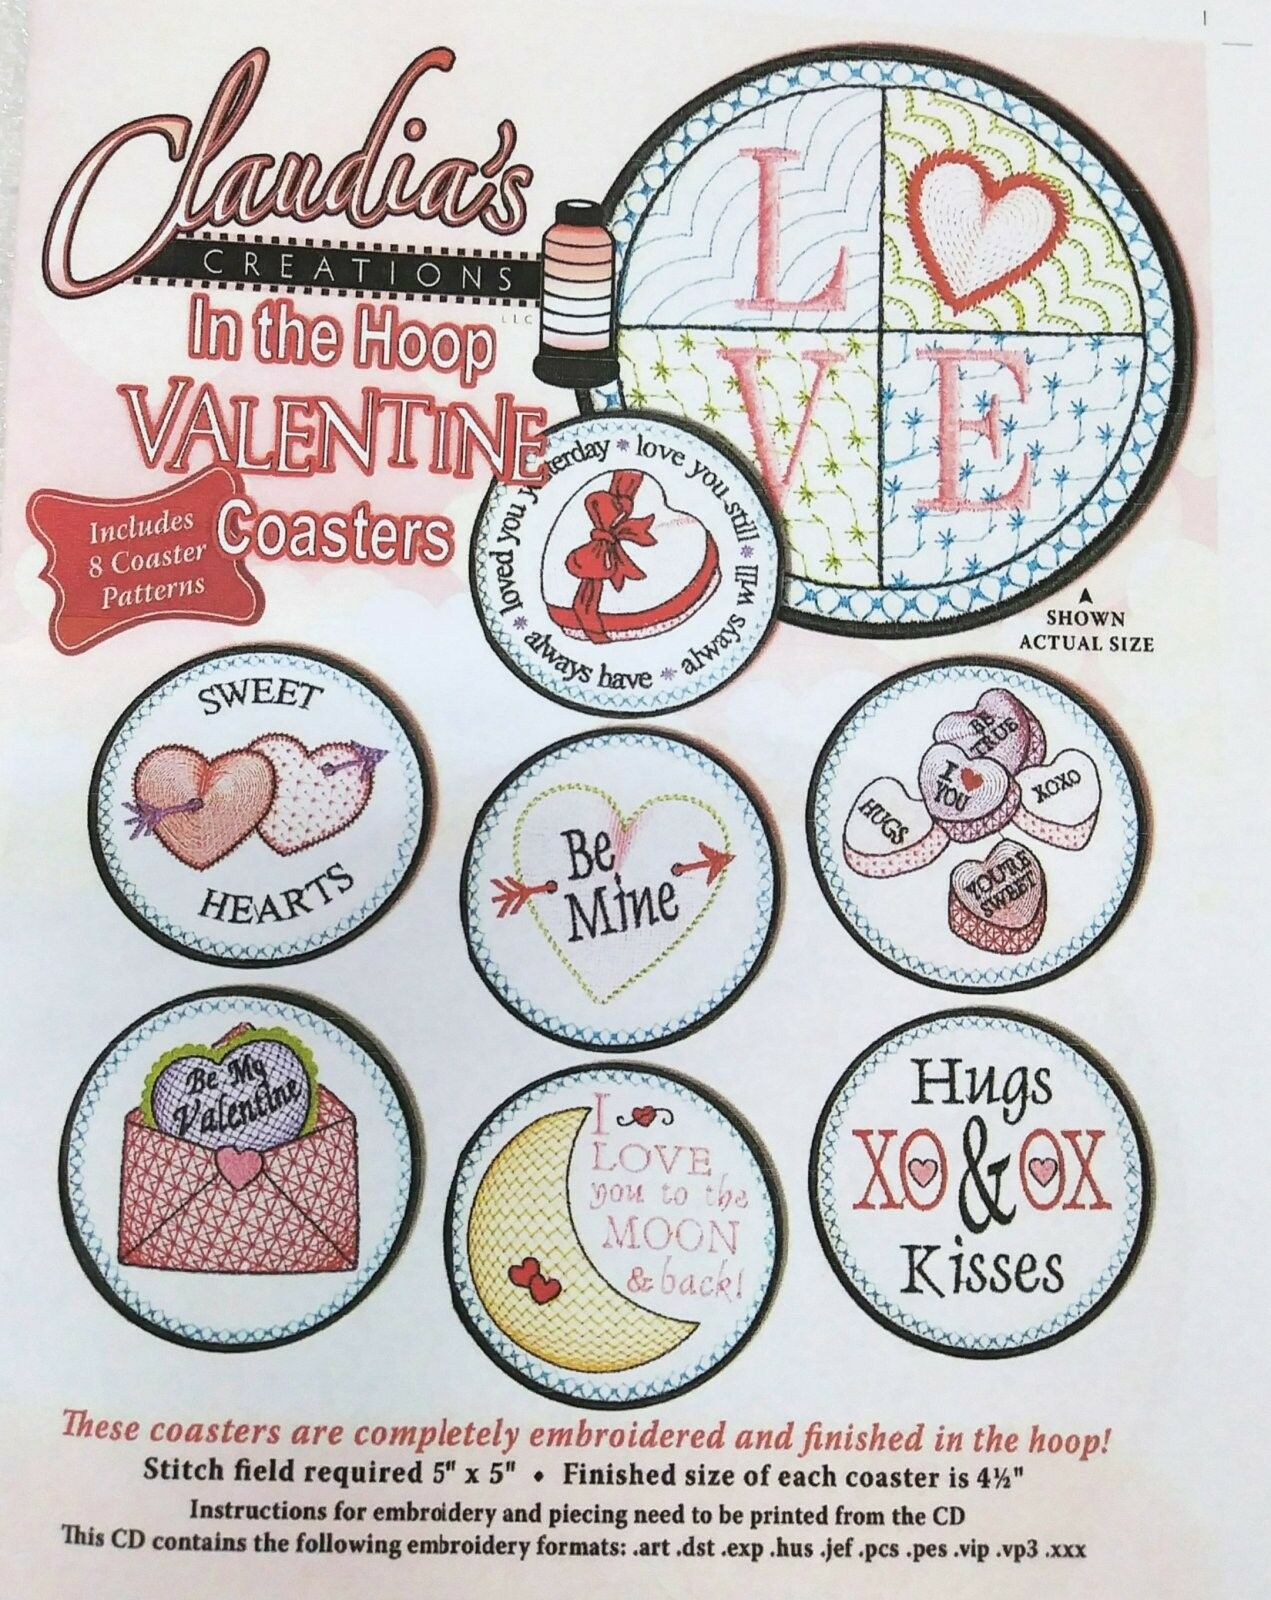 CLAUDIA'S CREATIONS IN THE HOOP VALENTINE COASTERS